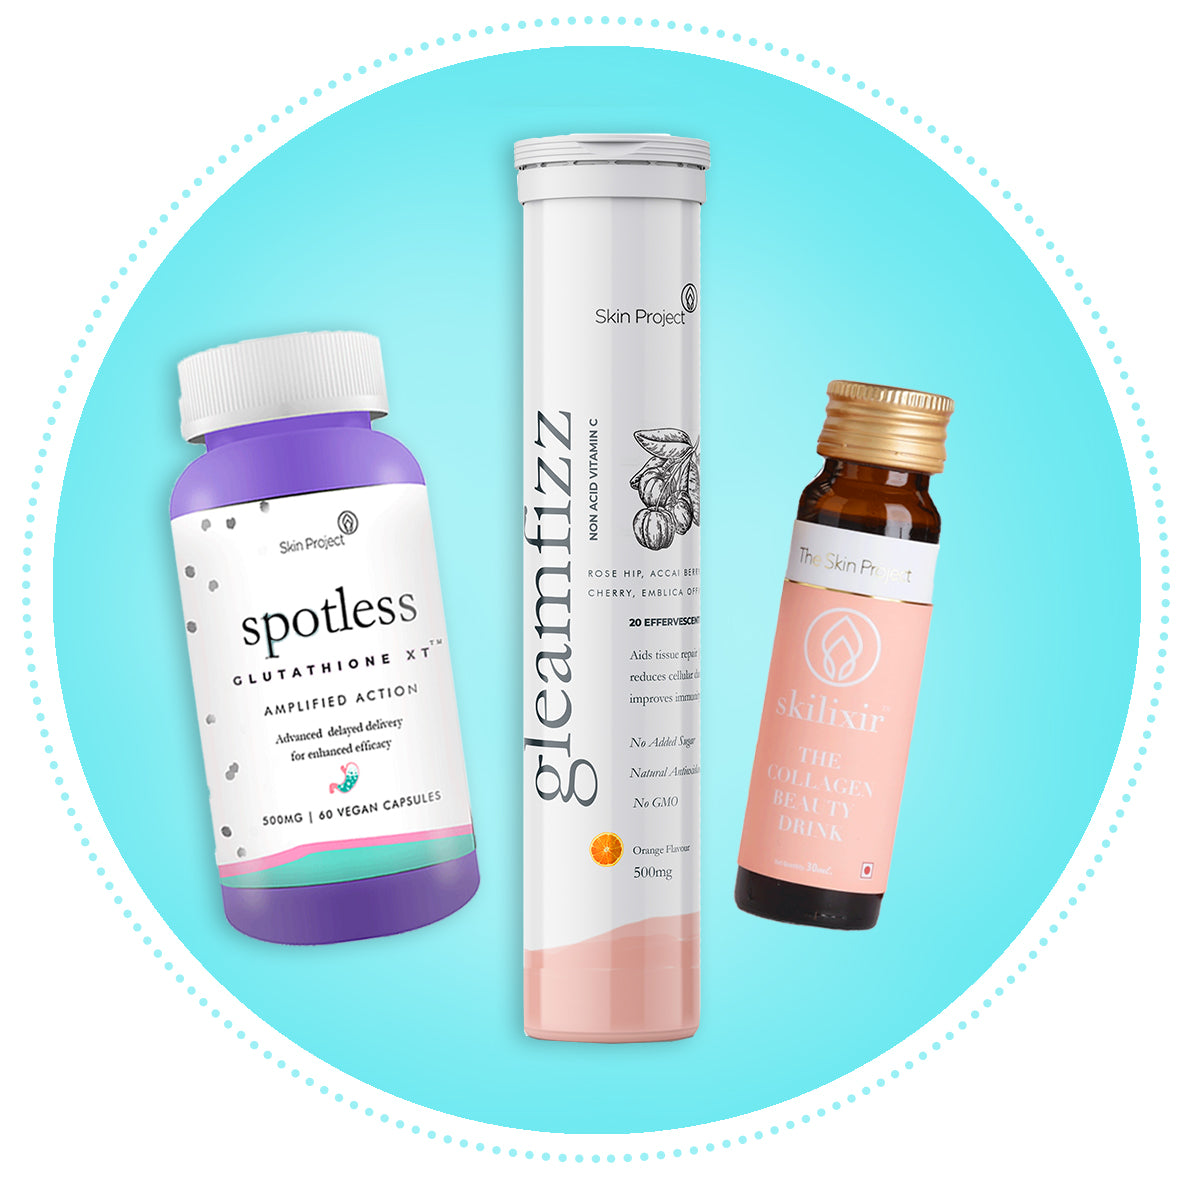 Skilixir, Glutathione and Gleamfizz 30 days Combo pack - Skin Project®